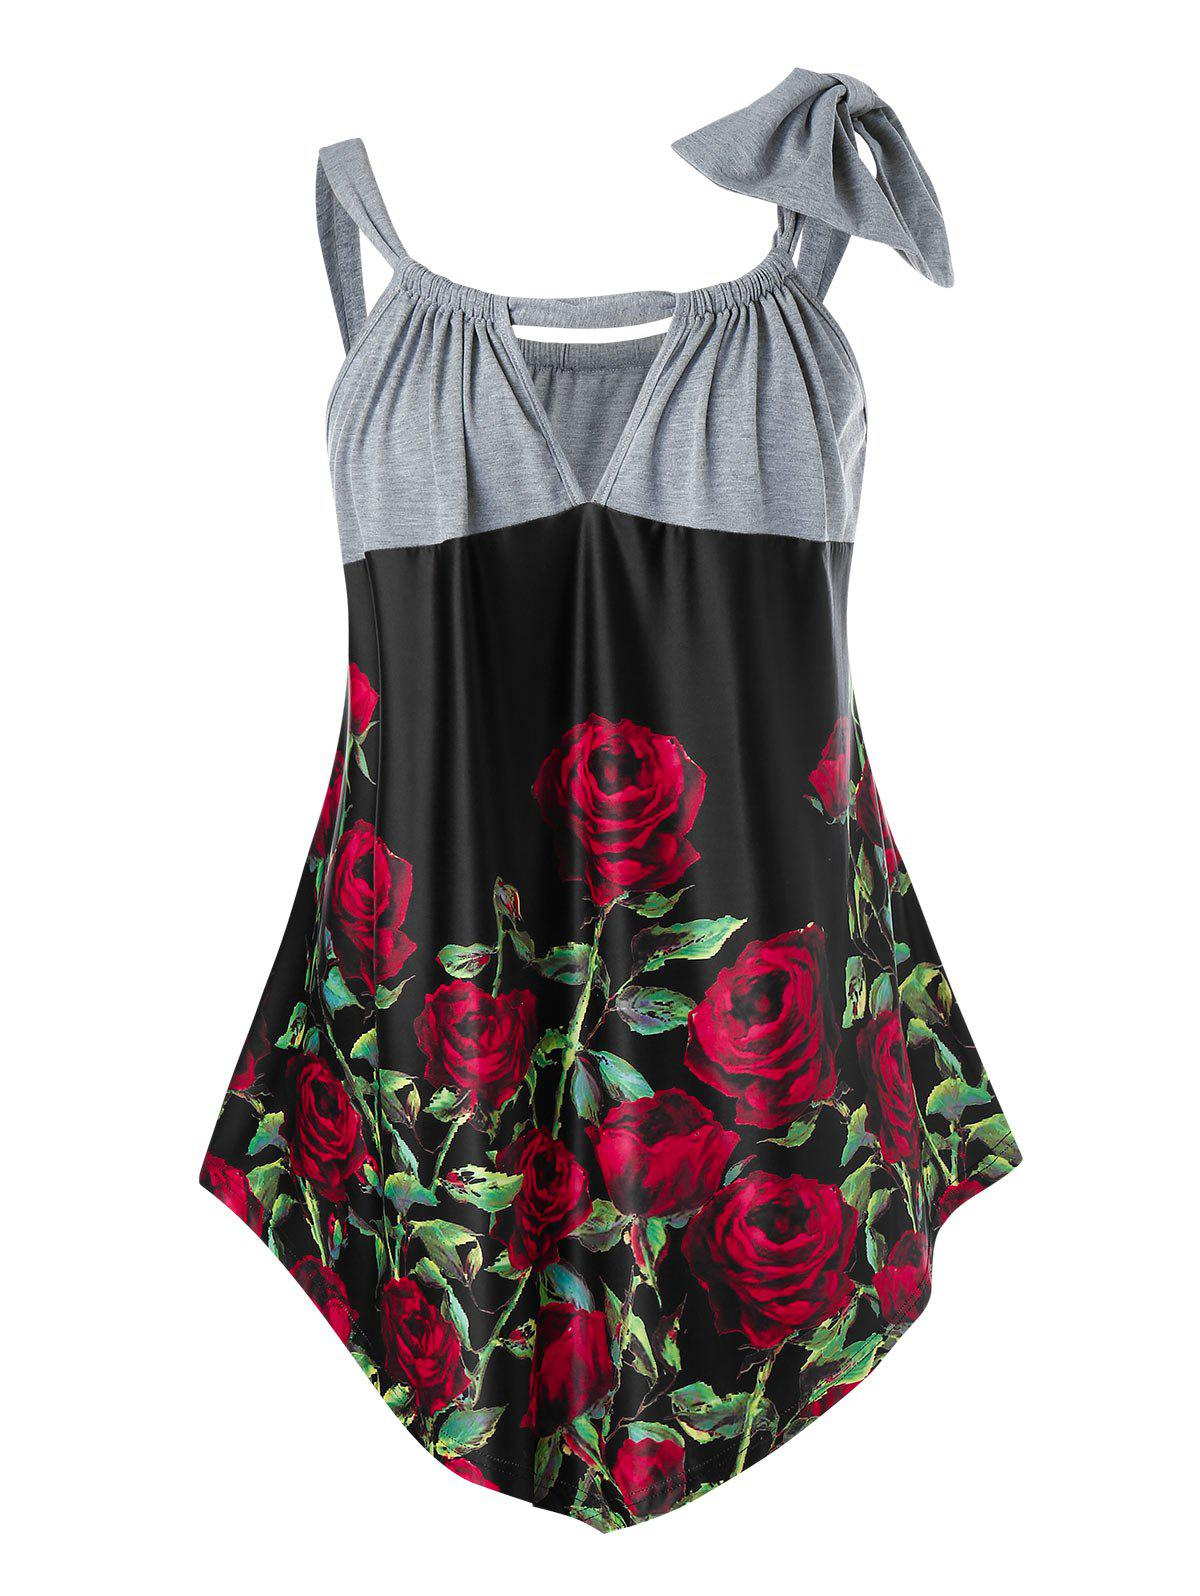 New Plus Size Rose Print Bowknot Keyhole Tank Top